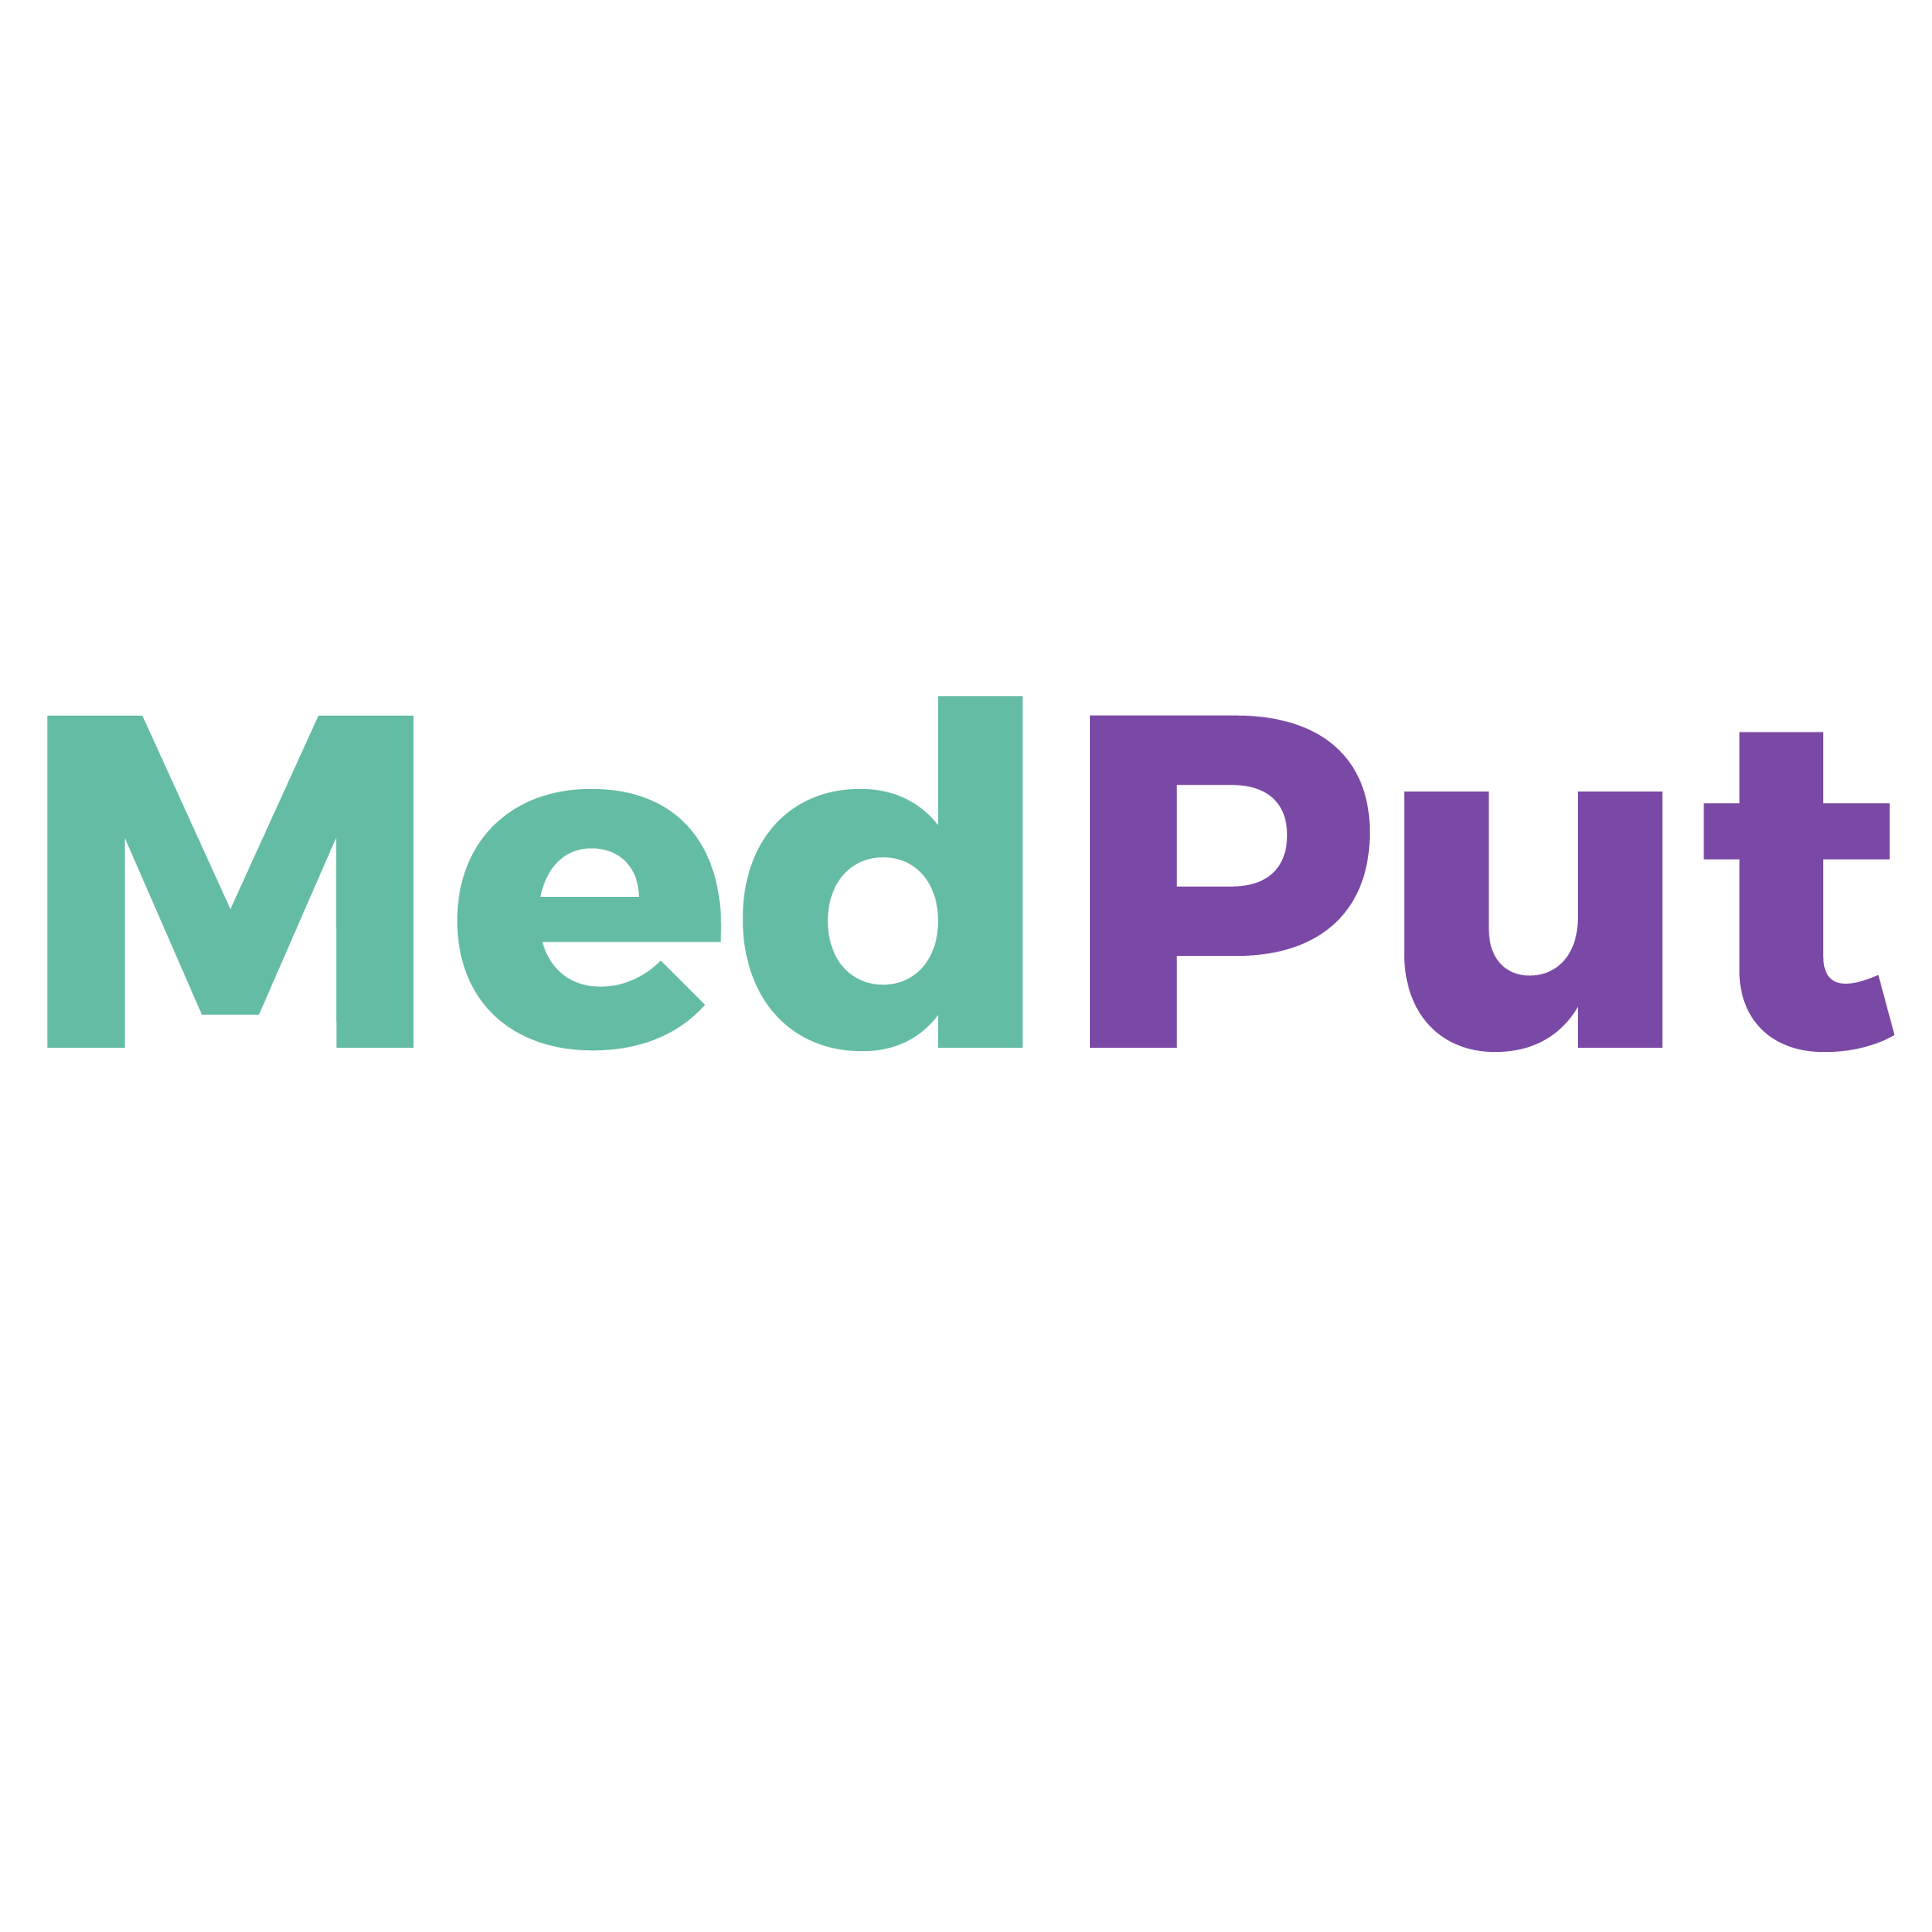 MedPut is an employee benefit that tackles out-of-pocket medical expenses. MedPut offers financing at 0% interest and with zero impact to an employee's credit score. The company's goal is to help employees cope with high health plan deductibles and obtain critical early-stage medical treatment.